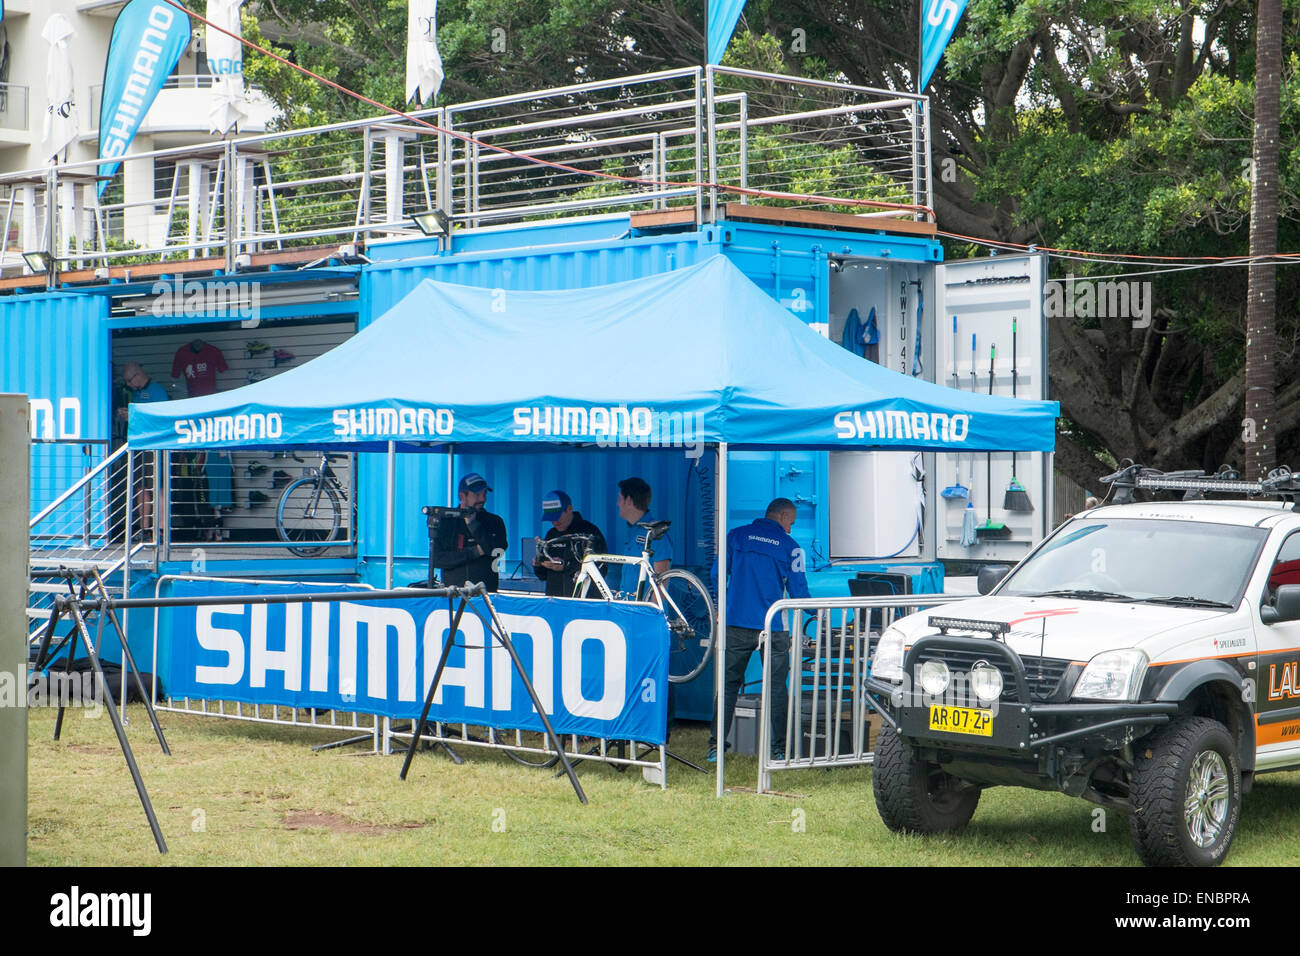 shimano support tent for The Ironman Triathlon in Port macquarie,new south wales,australia - Stock Image